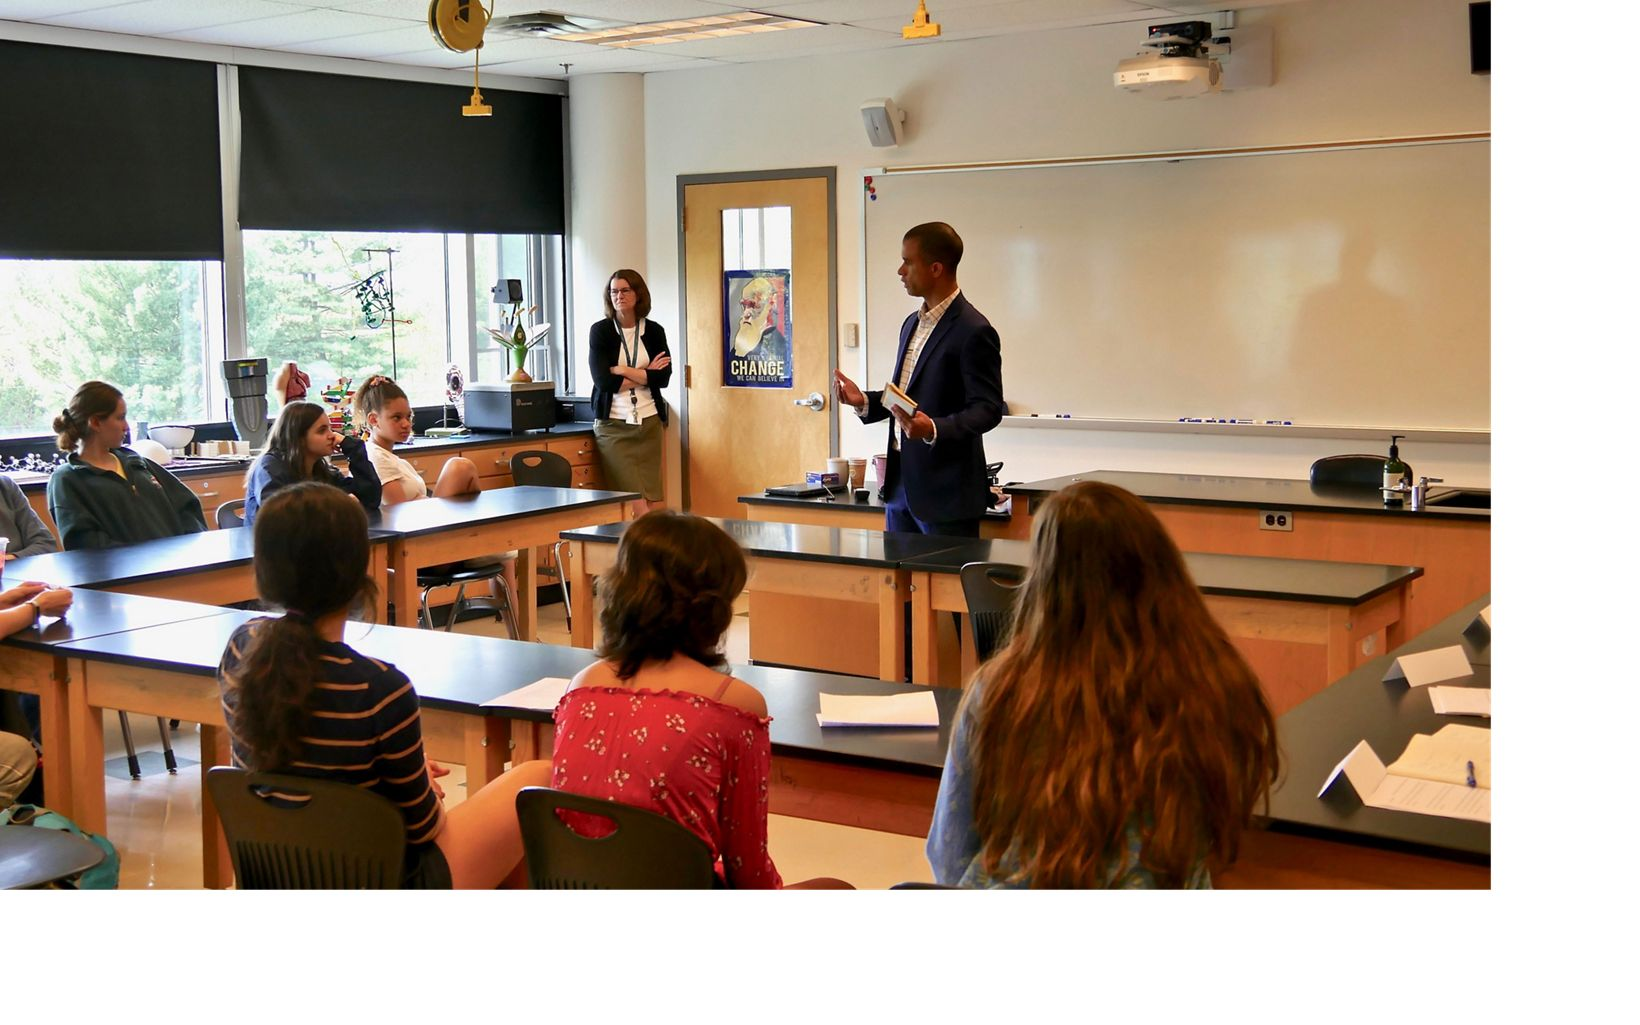 MD/DC Urban Conservation Program Director Kahlil Kettering leads an advocacy training workshop at Georgetown Day School.